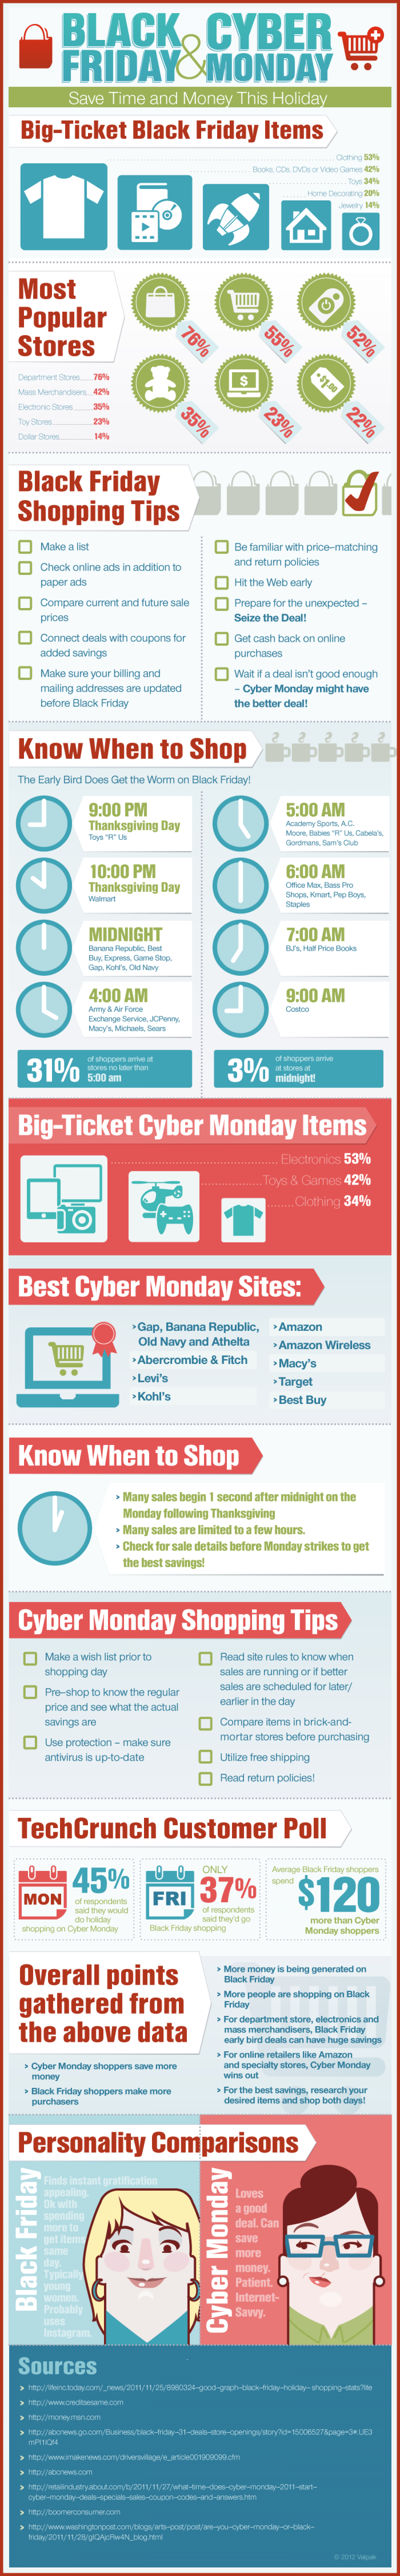 Black Friday Shopping Guide Infographic